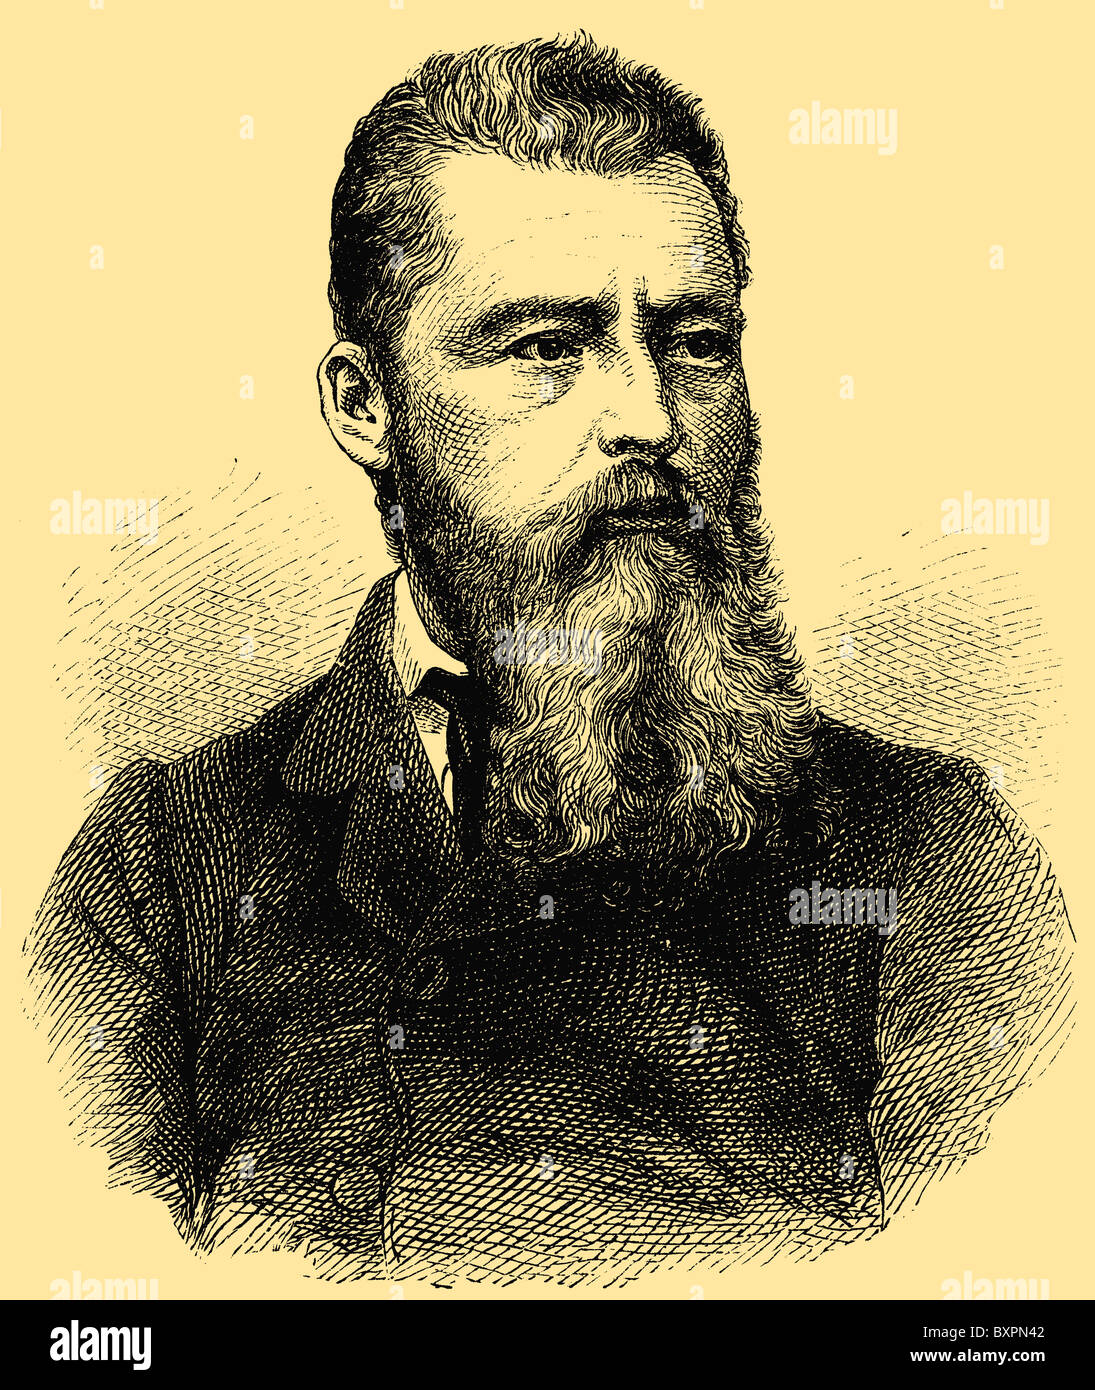 Ludwig Feuerbach (1804 - 1872), German philosopher and anthropologist - Stock Image